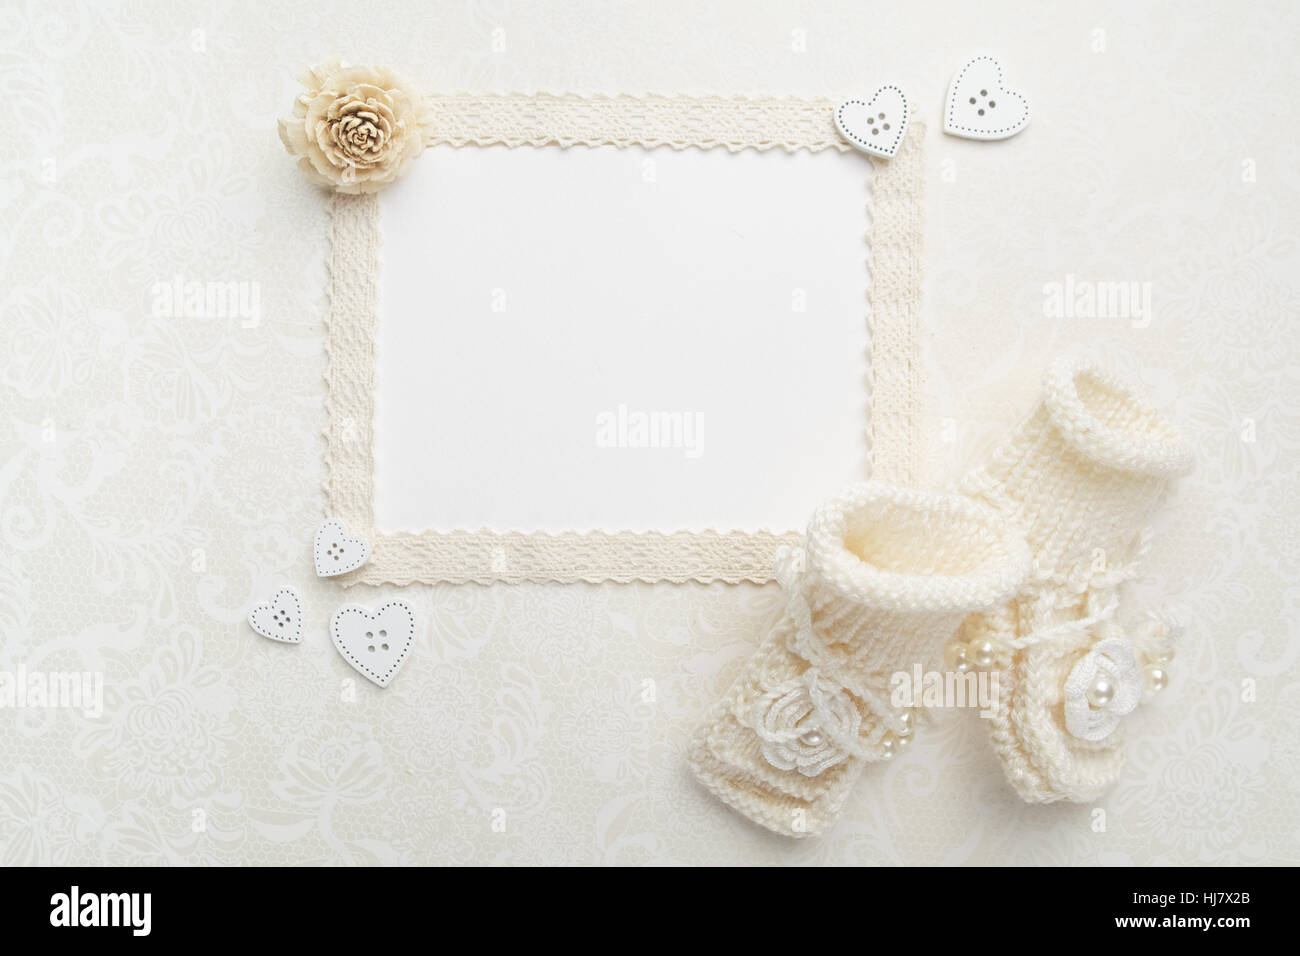 New Born Or Baptism Greeting Card Blank Paper With Baby Girl Shoes